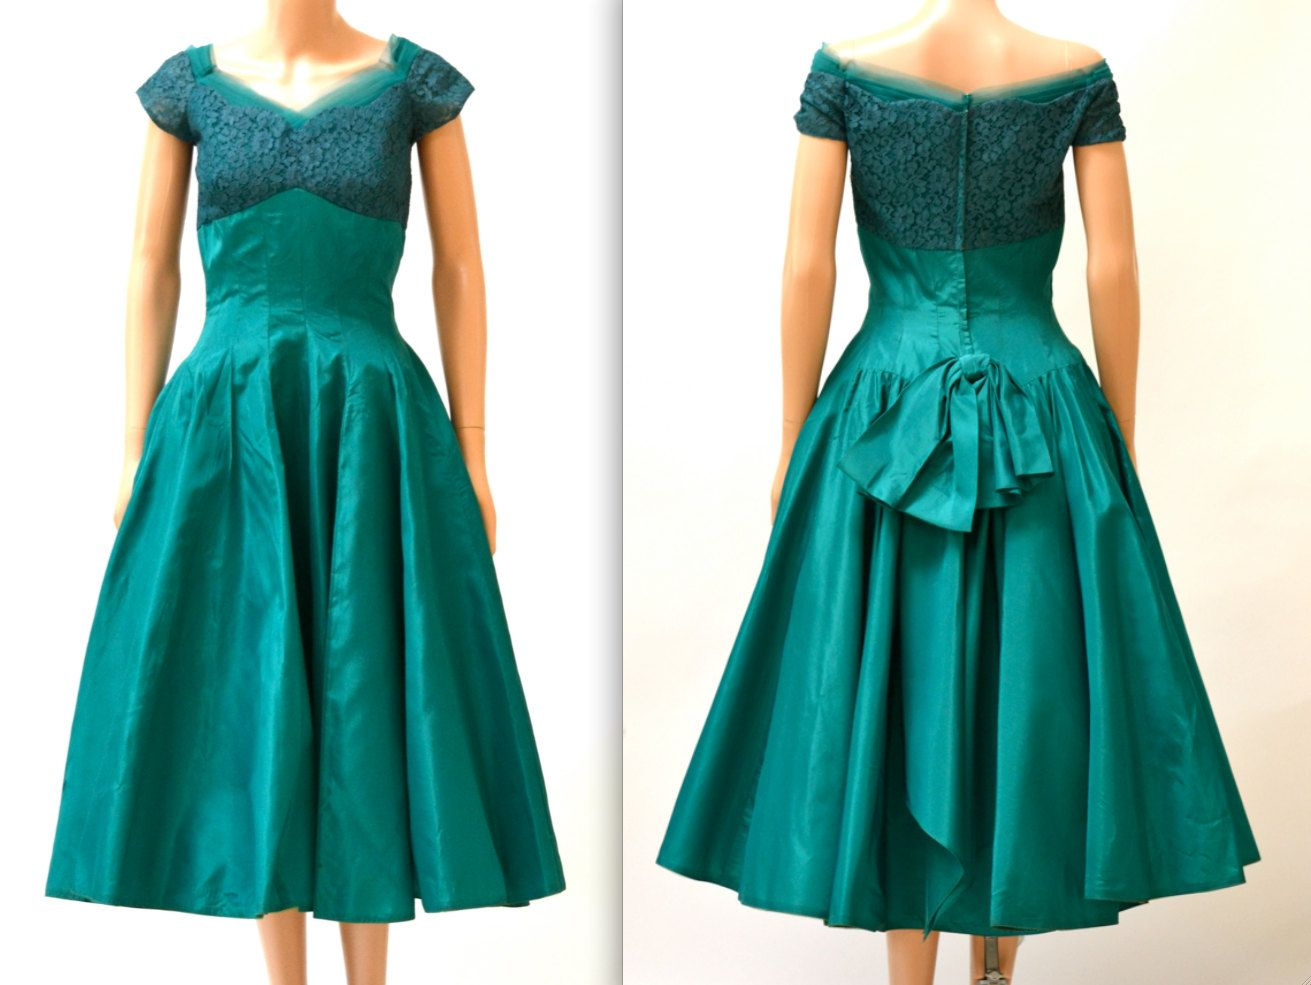 Vintage 1950s Prom Dress Size Small Medium Teal Green By Emma Domb ...